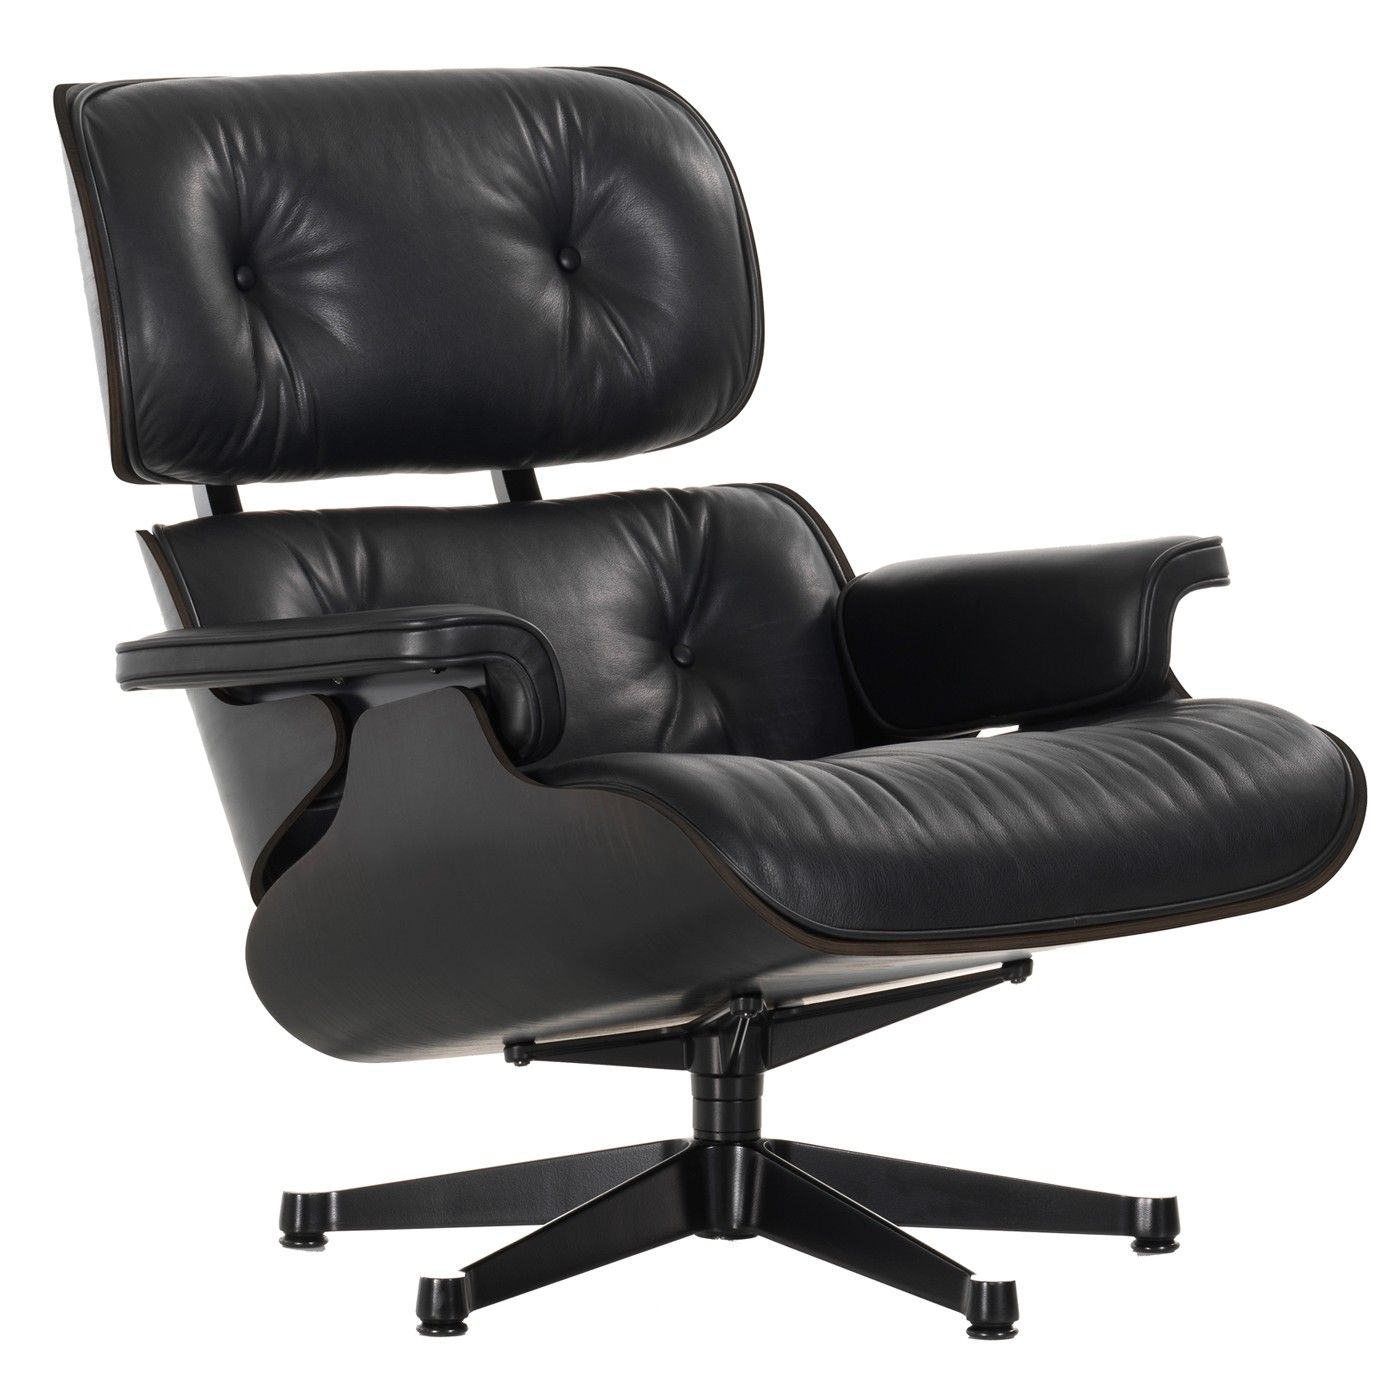 Lounge Sessel Eames Vitra Eames Lounge Chair Sessel Schwarz Flinders